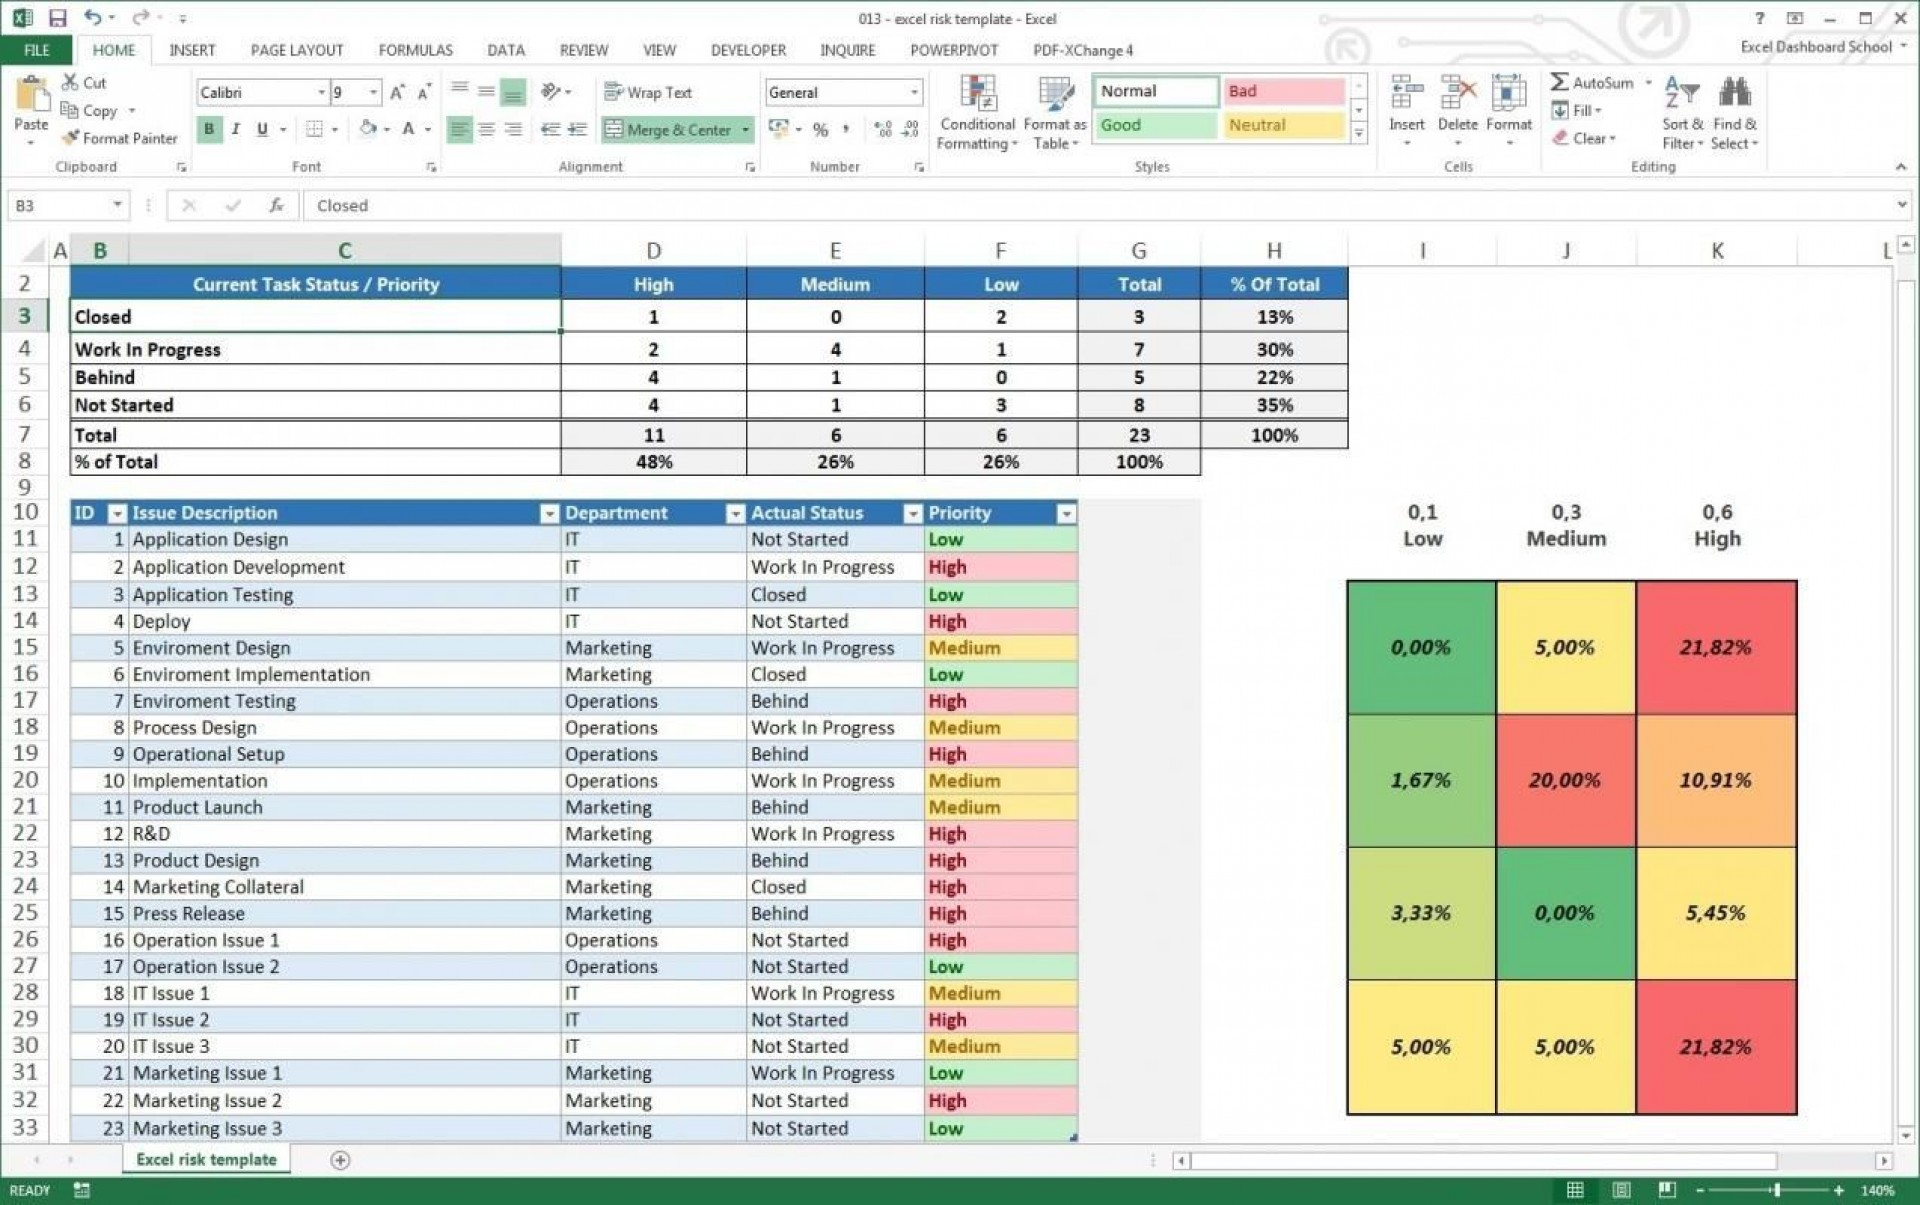 000 Impressive Project Management Tracking Template Free Excel Sample  Dashboard Best Construction1920